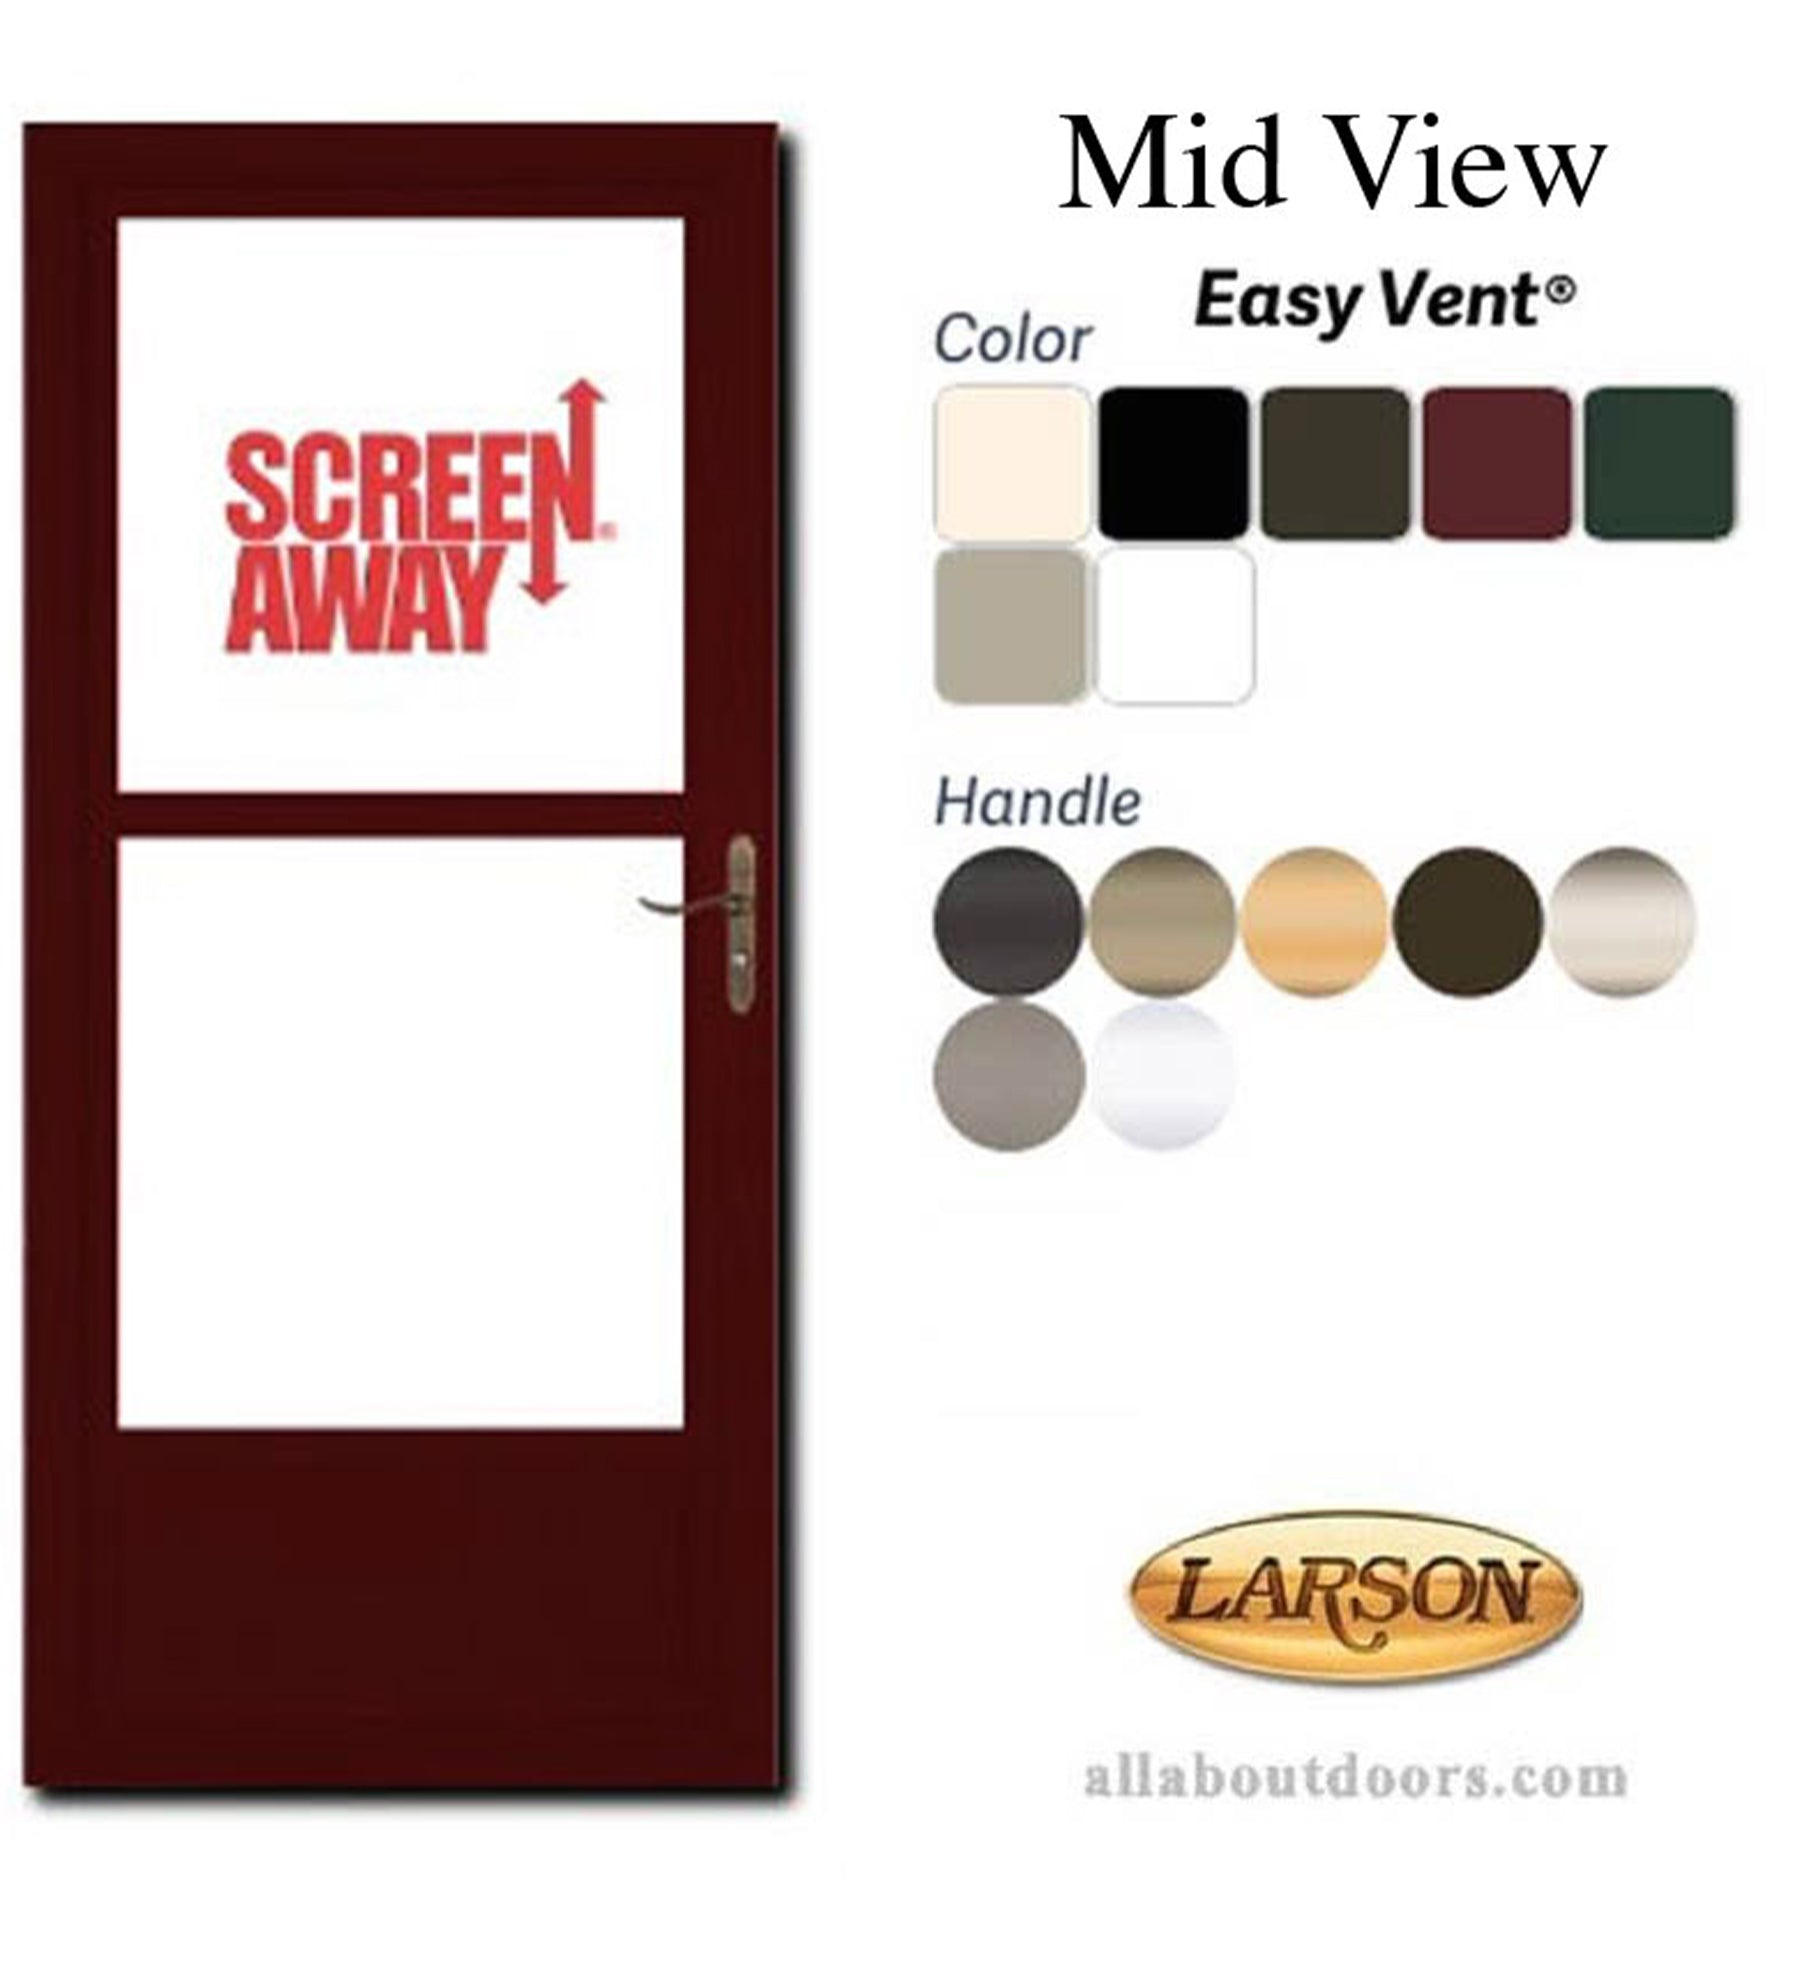 INSTALLED Larson Life Style Mid-View Storm Door w/ Hardware STARTING $527.99